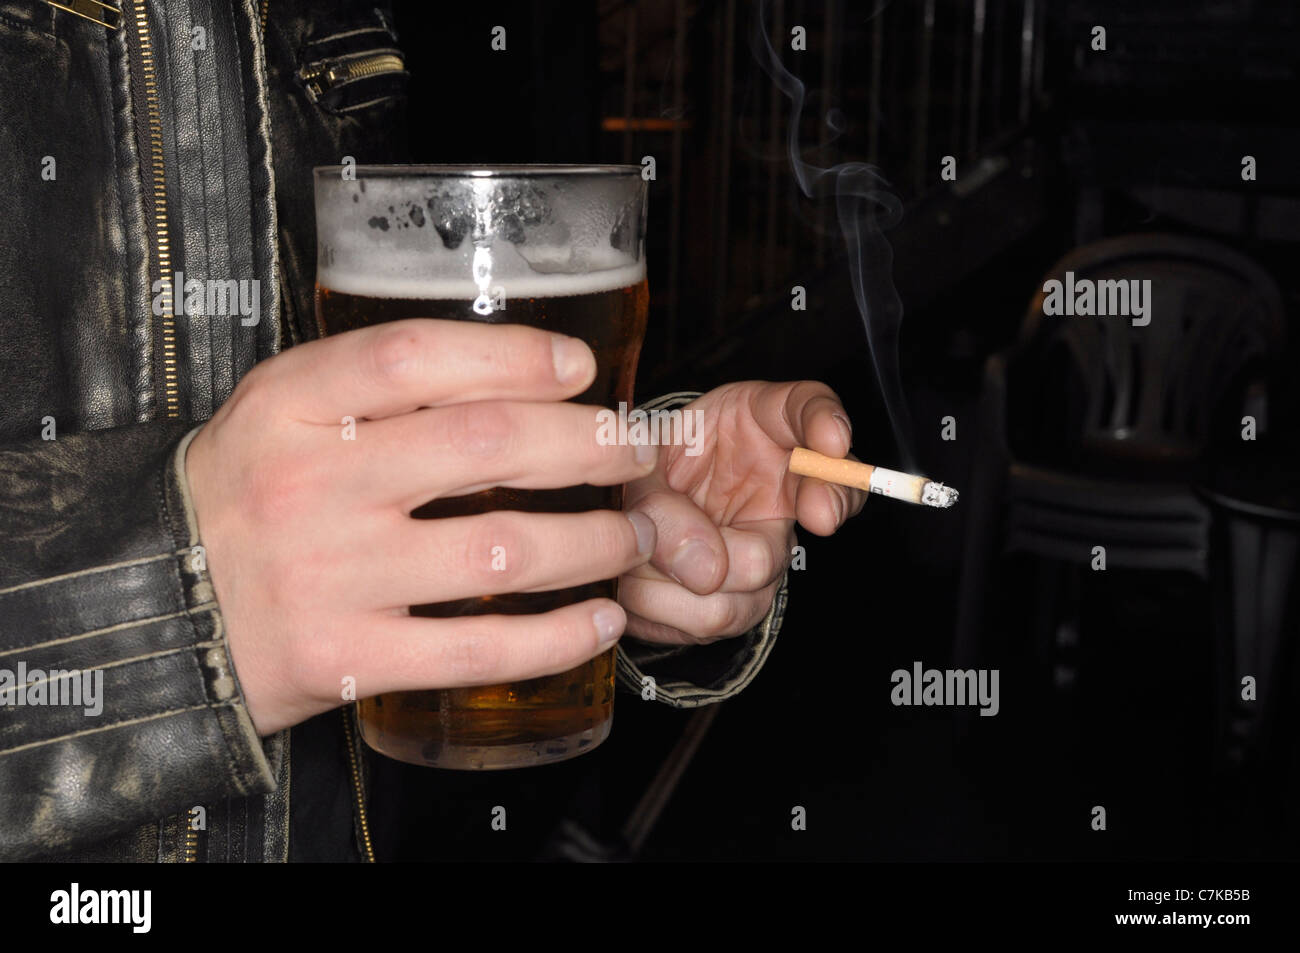 Holding as pint and smoking a cigarette - Stock Image